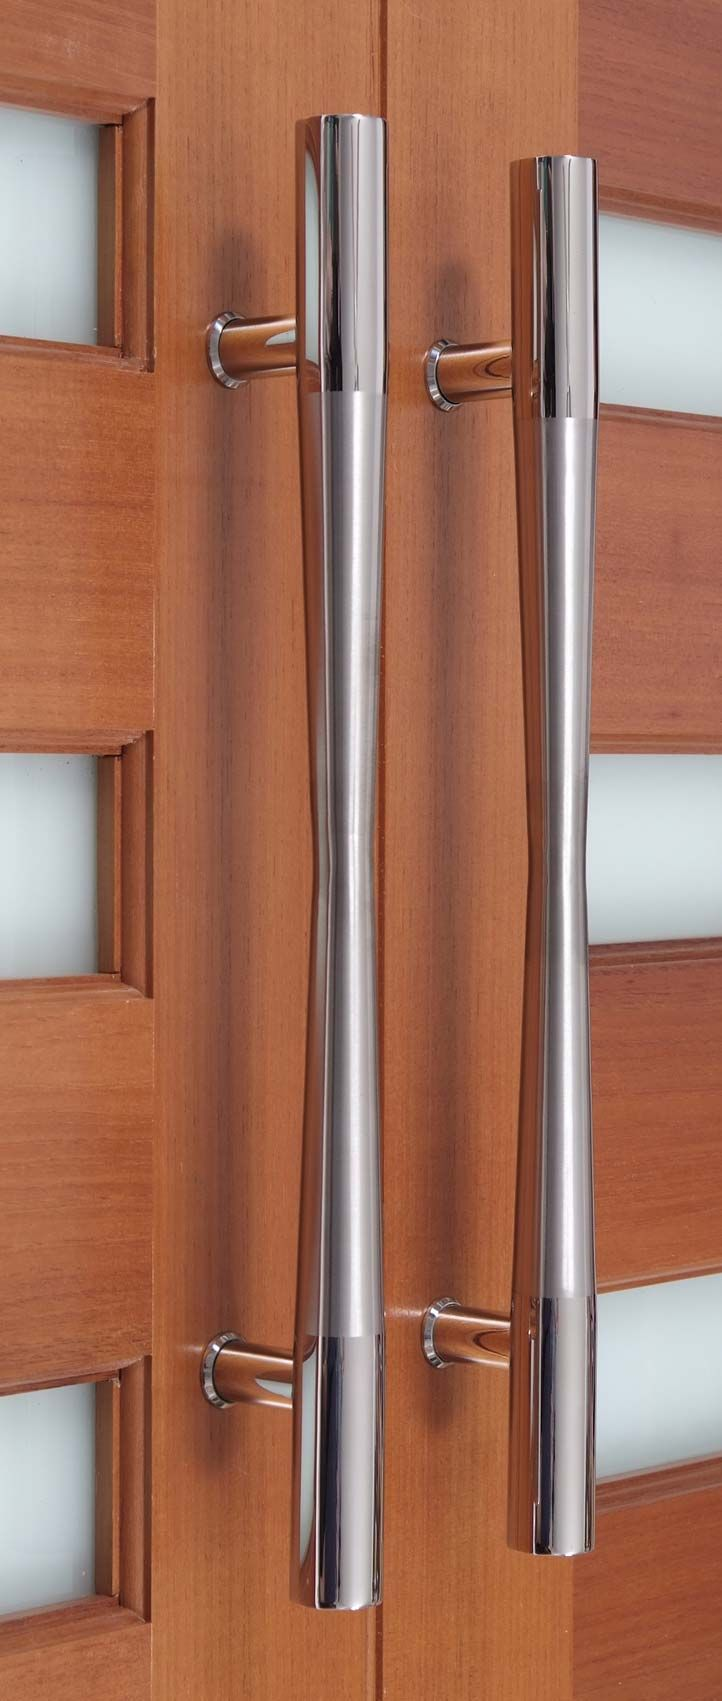 The Hour Glass front door pull handle is another stunning handle ...